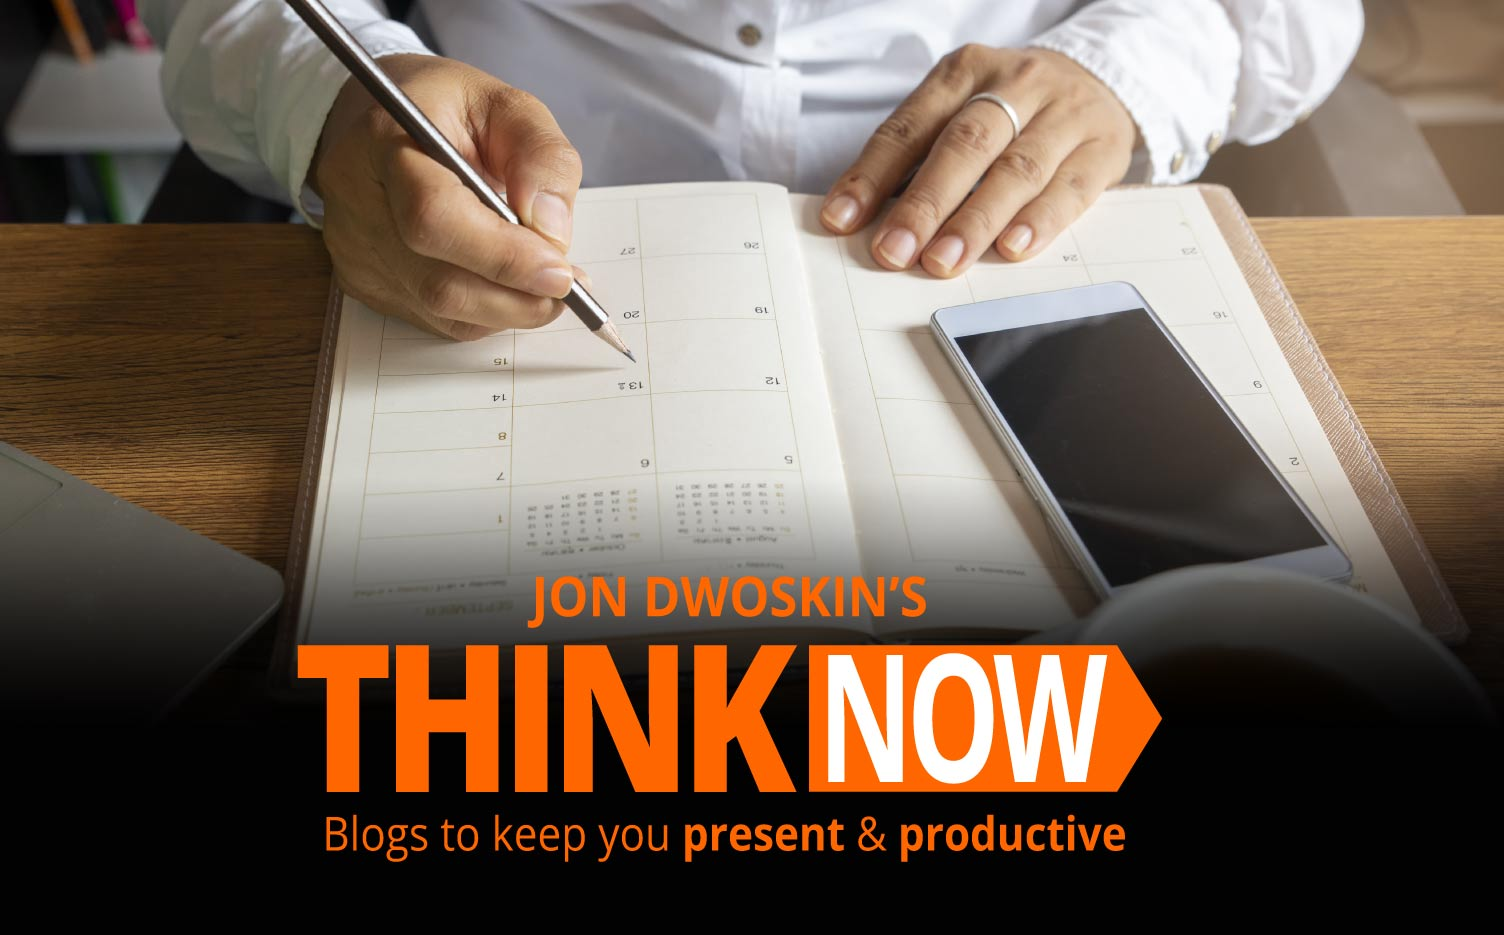 Jon Dwoskin's THINK NOW Blog: Taking Personal Time for Yourself